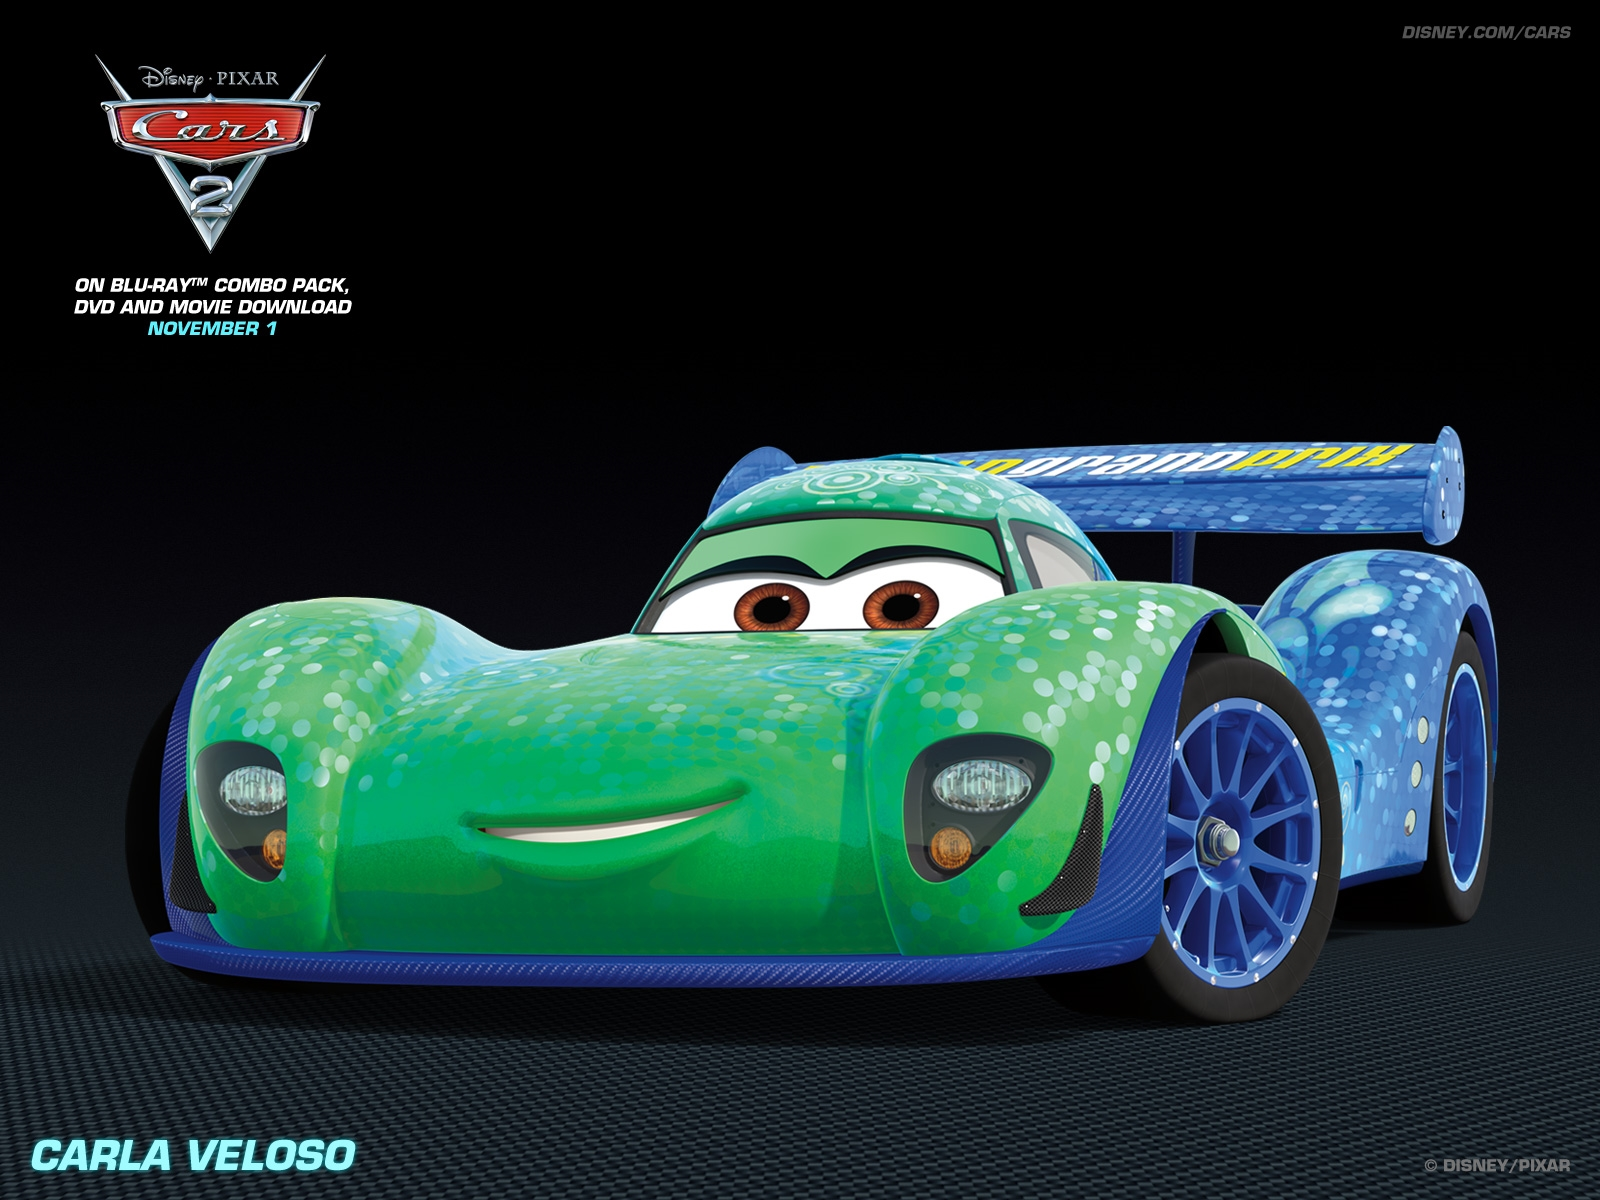 carla veloso disney pixar cars 2 free hd wallpaper 1600 1200